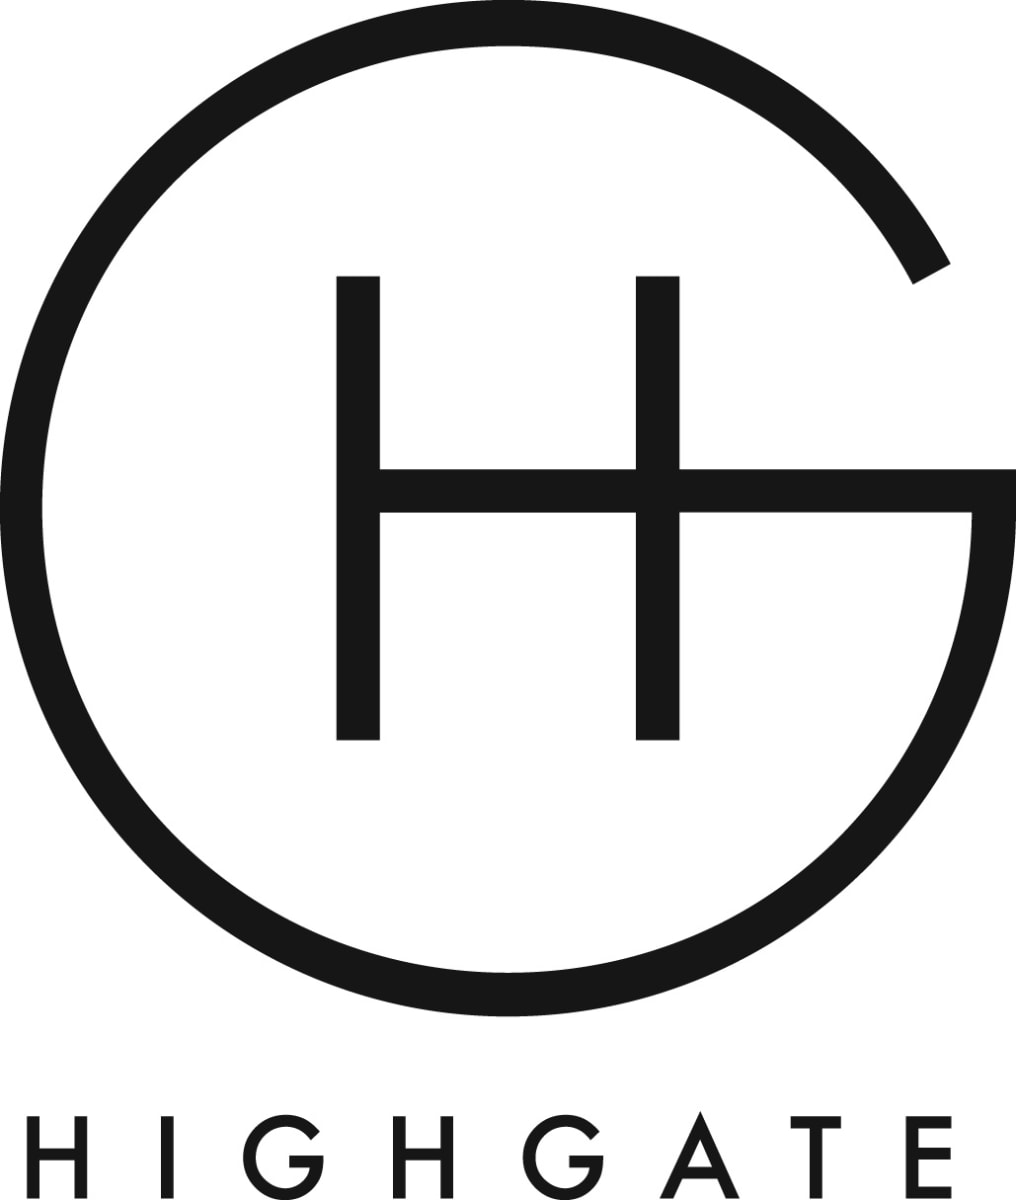 Highgate_logo_Main Mark_Black